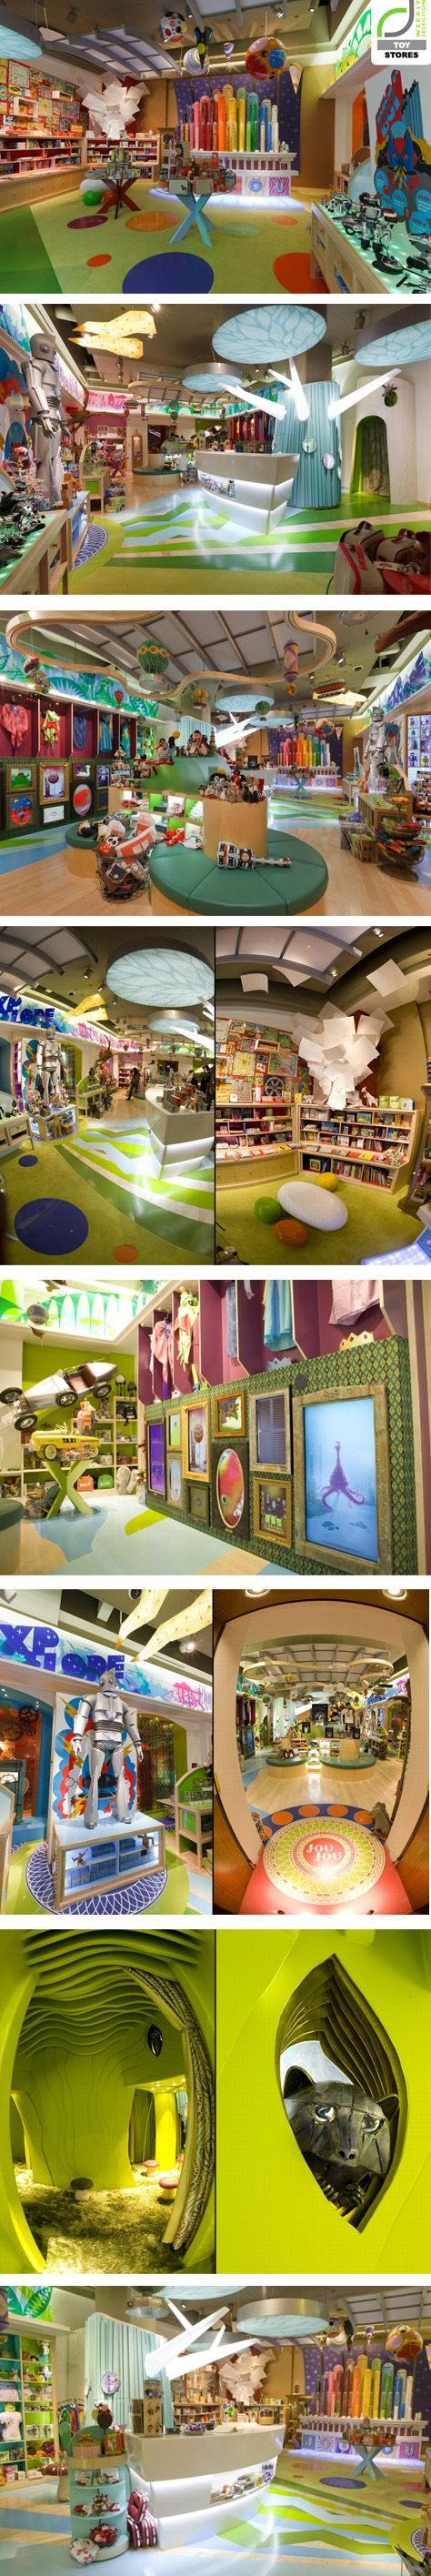 Jou Jou toy store by Watts Architects, Salt Lake City – Utah....